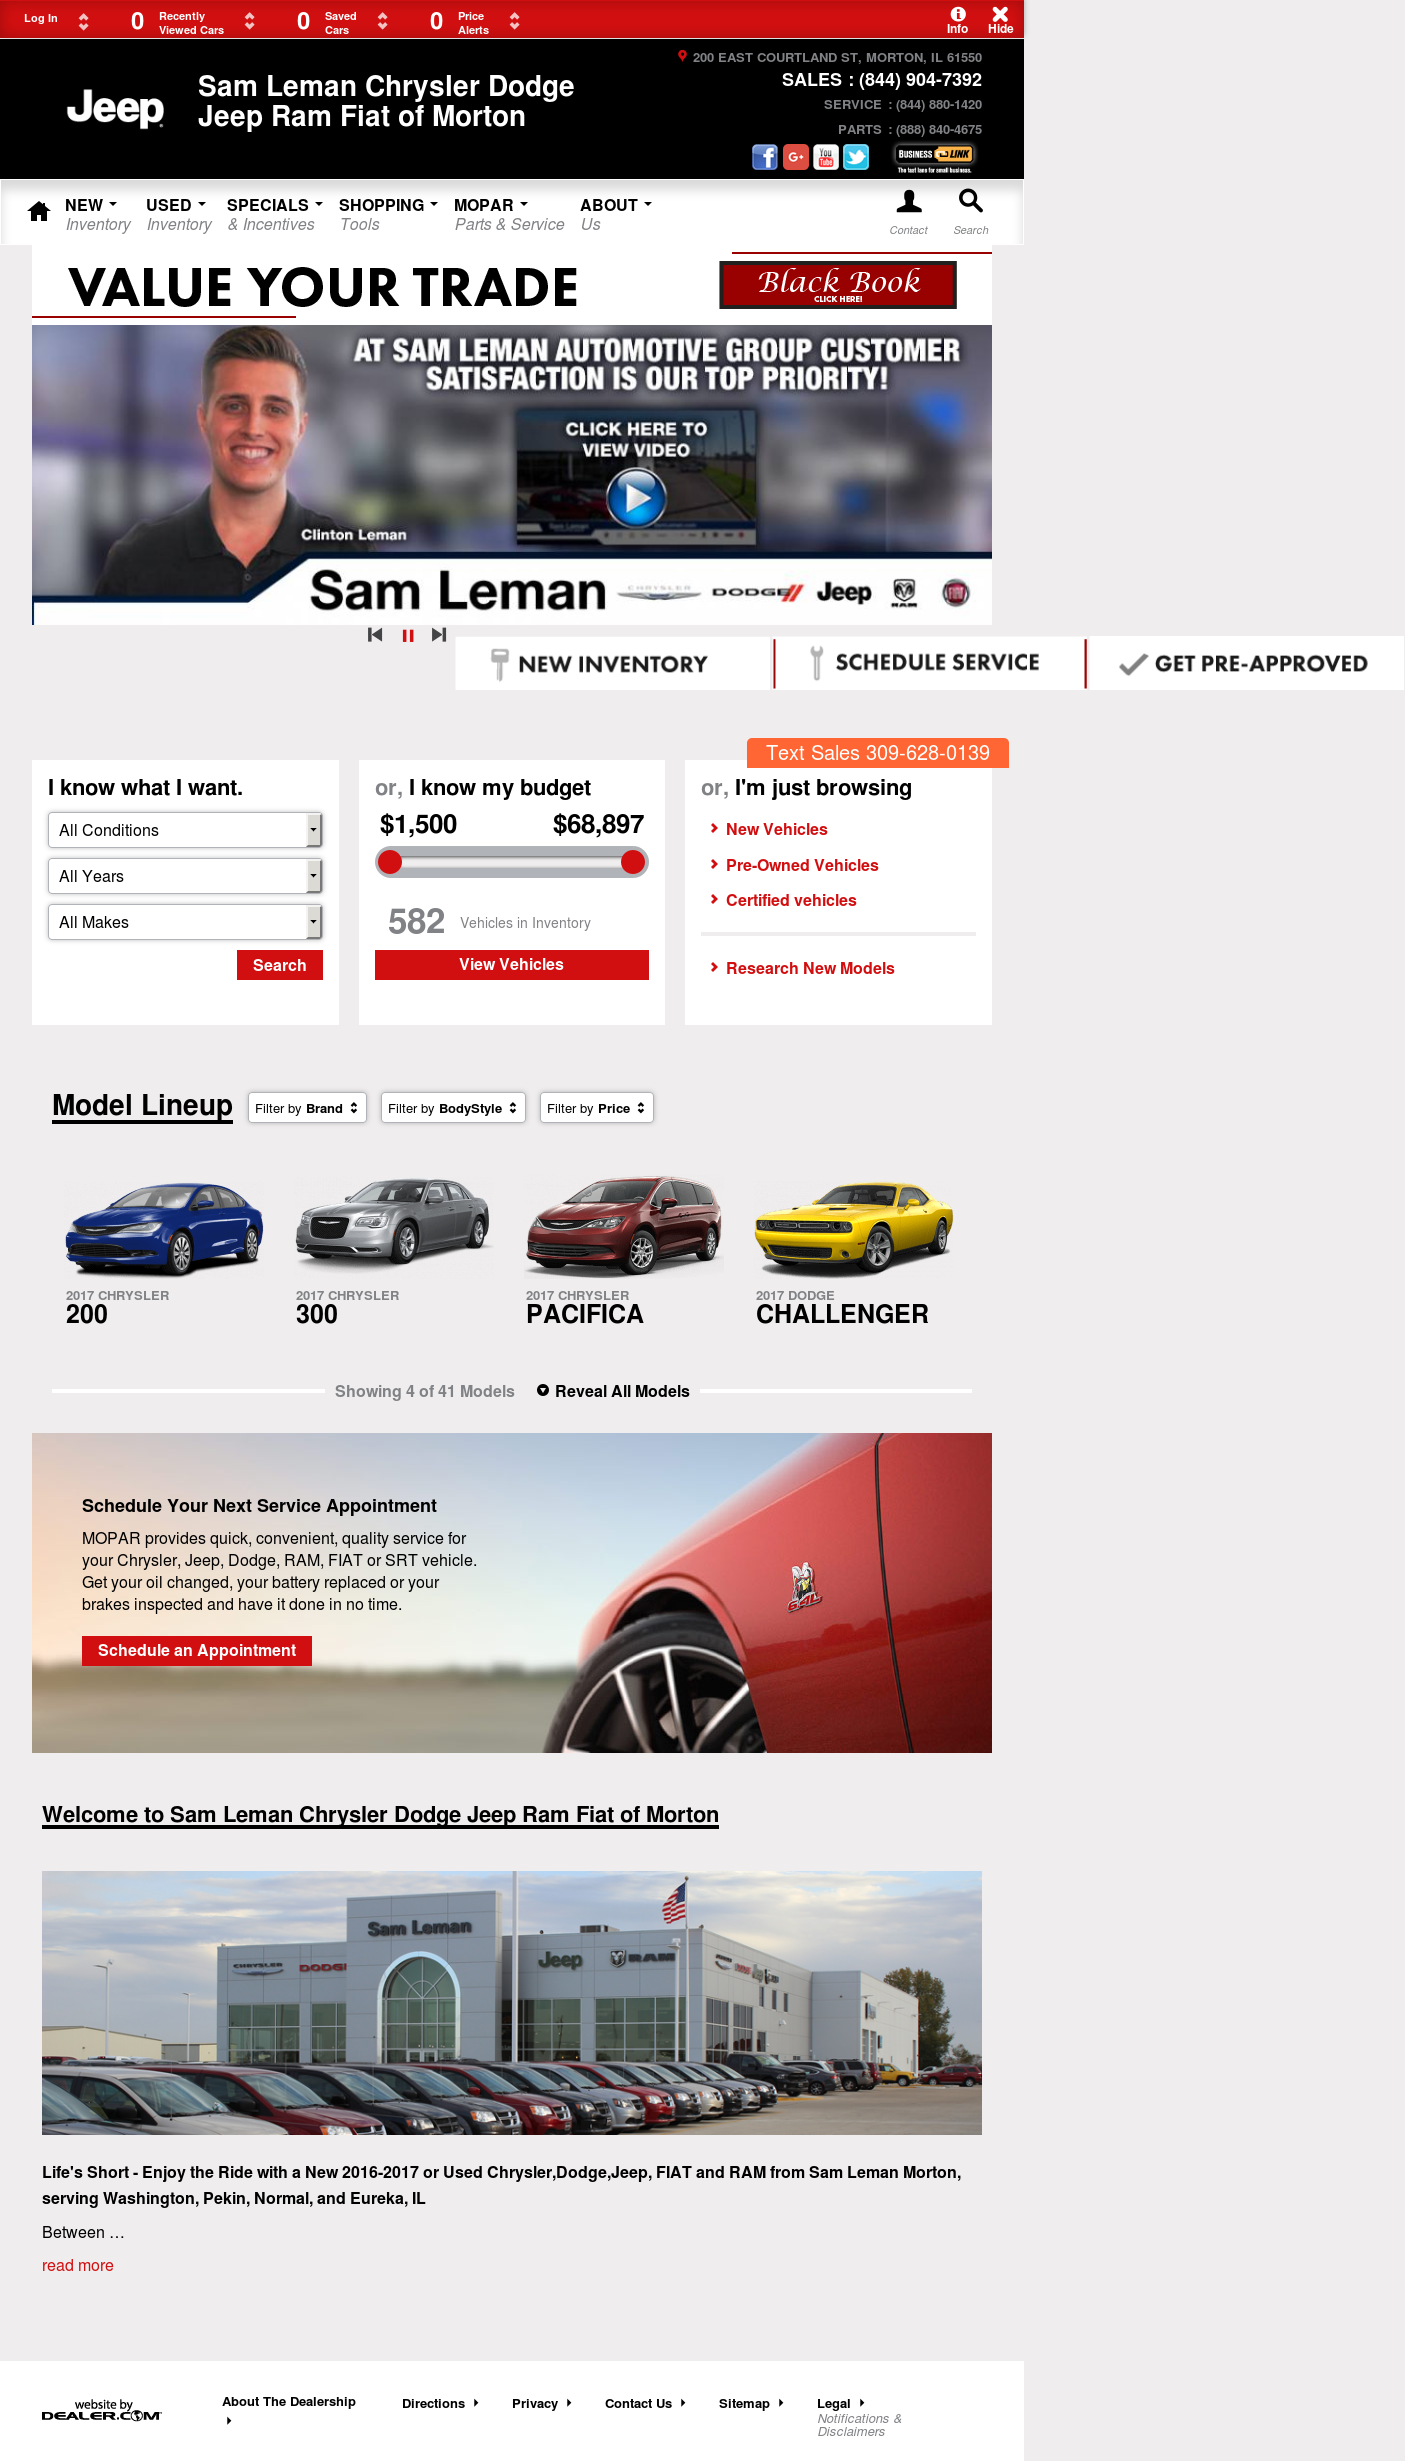 Sam Leman Chrysler Dodge Jeep petitors Revenue and Employees